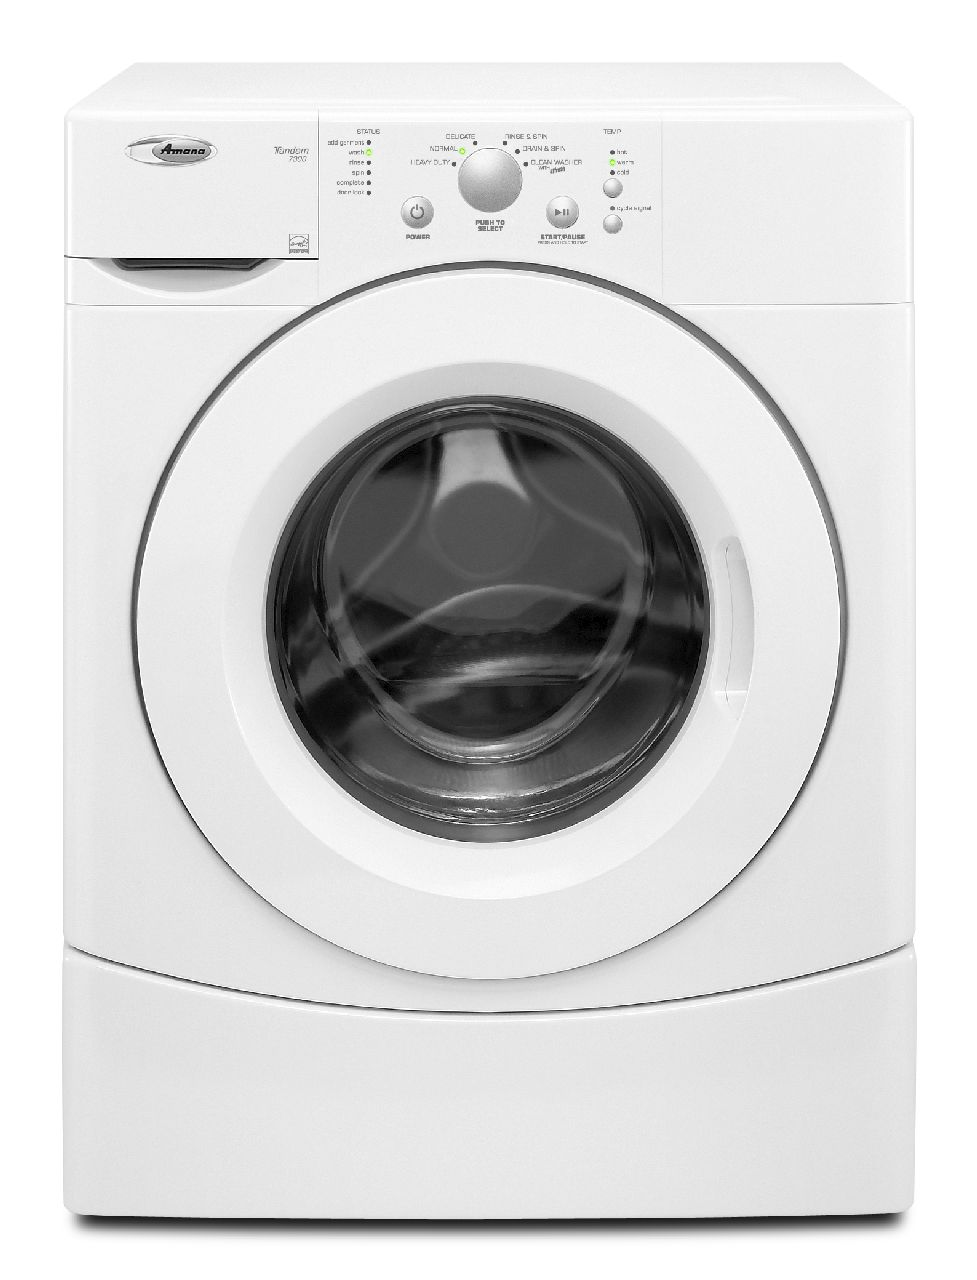 Amana Washing Machine Model Nfw7300ww02 Parts And Repair Help Wiring Diagram Product Detail